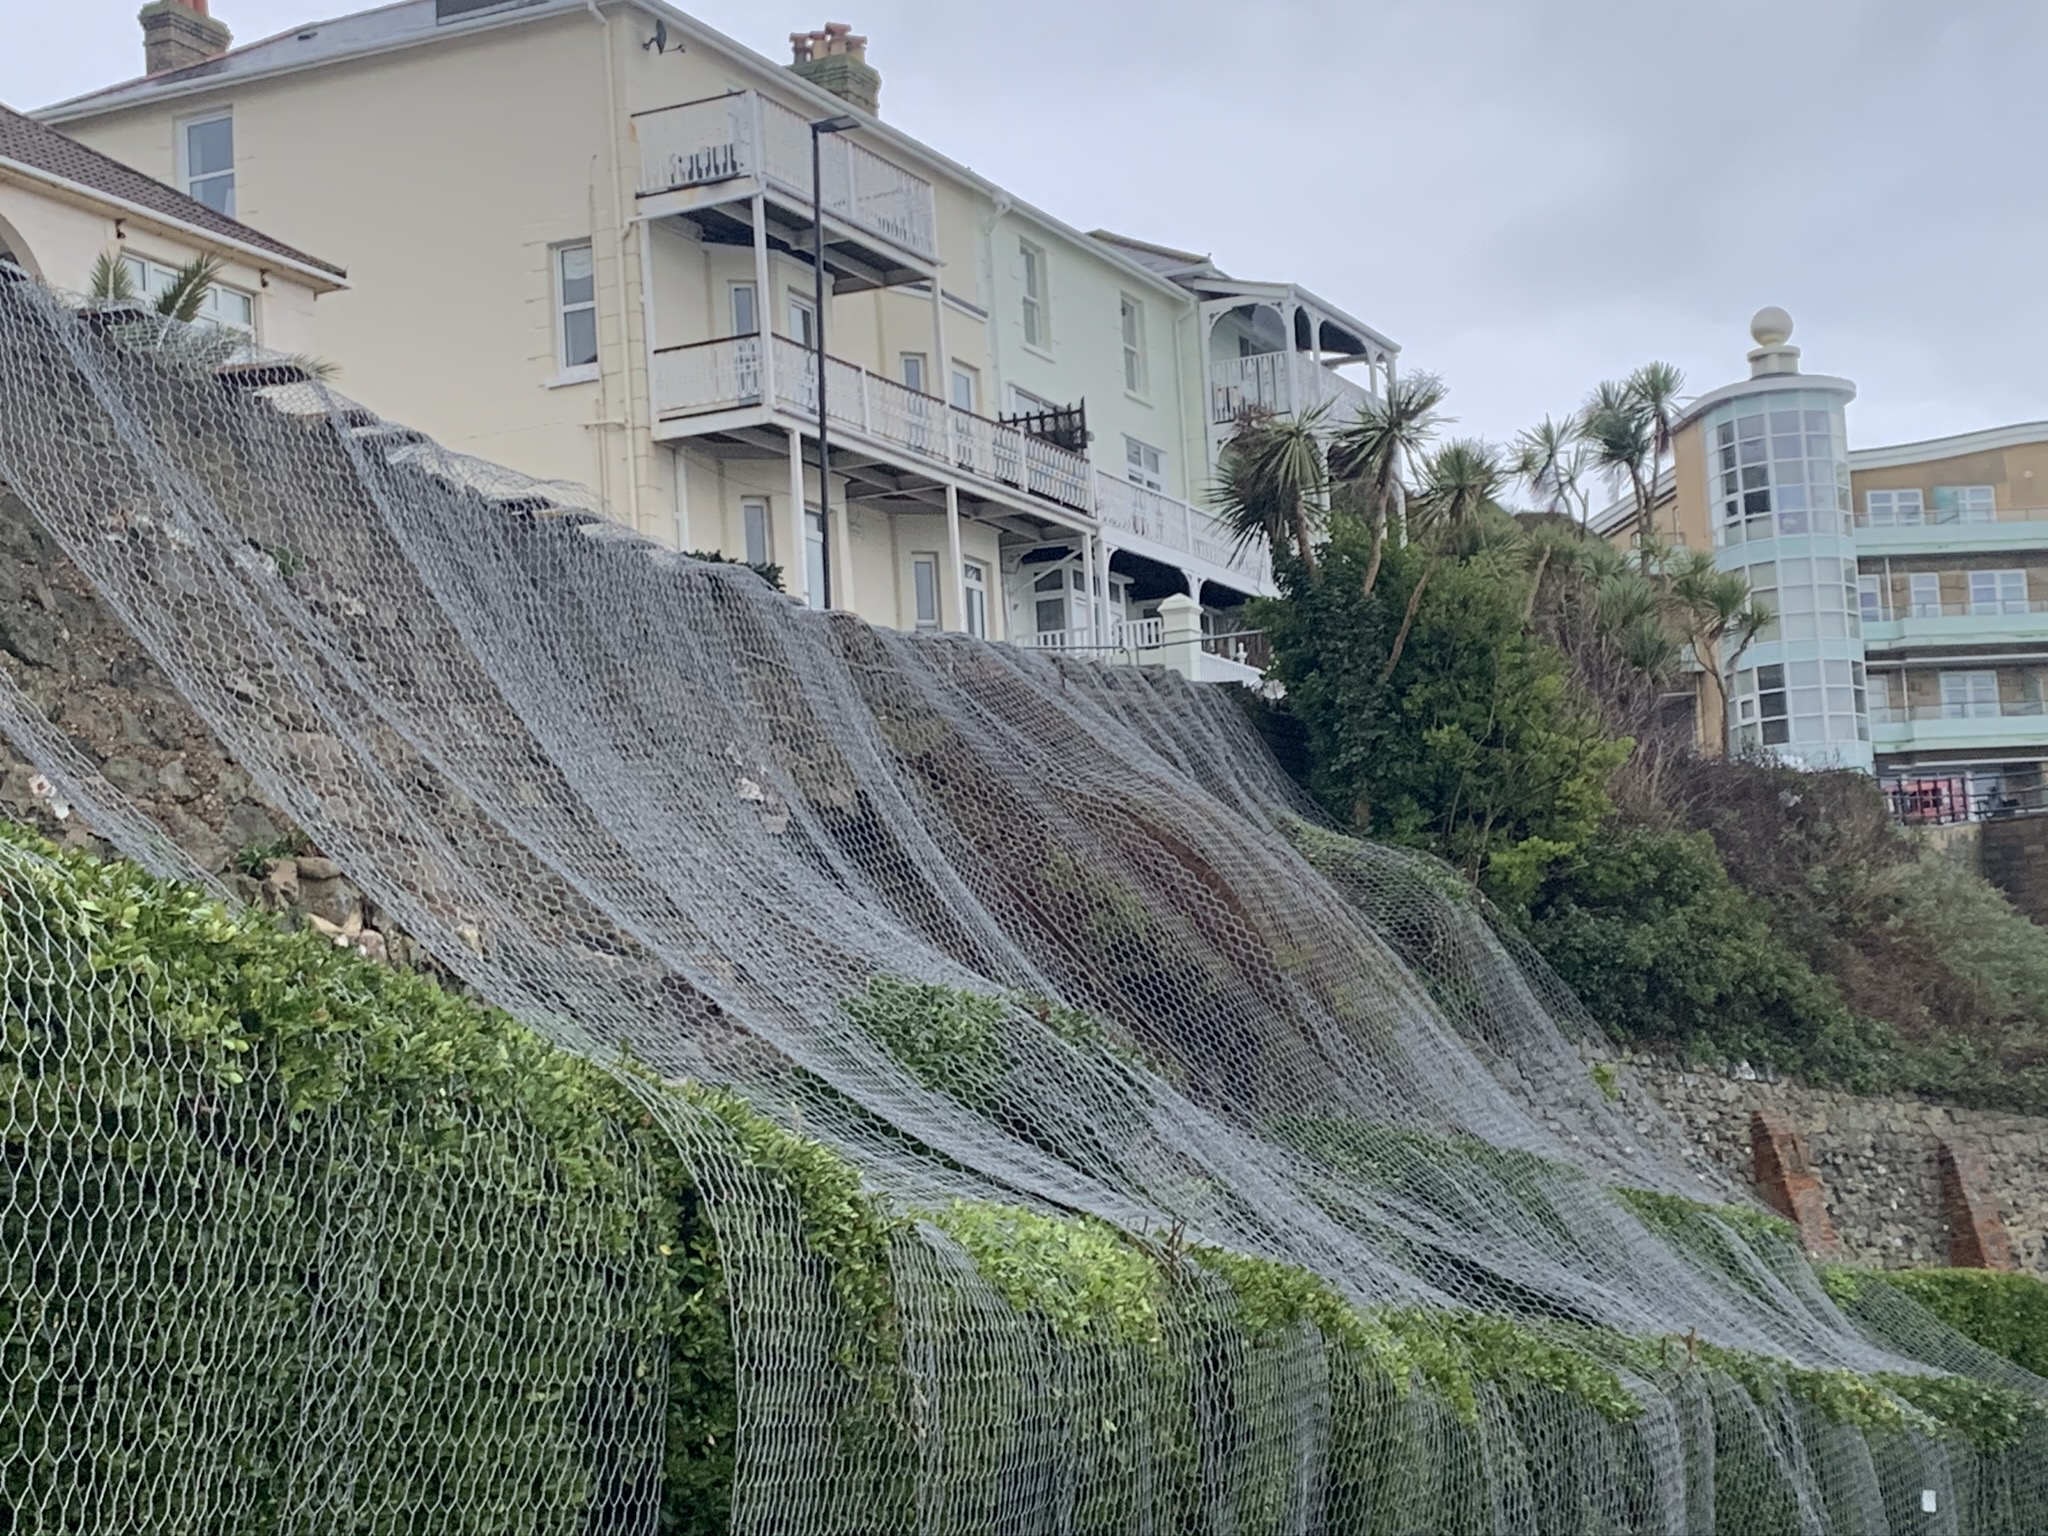 Photo showing terracing at Belgrave Road Ventnor covered by wire netting following the partial collapse of a wall